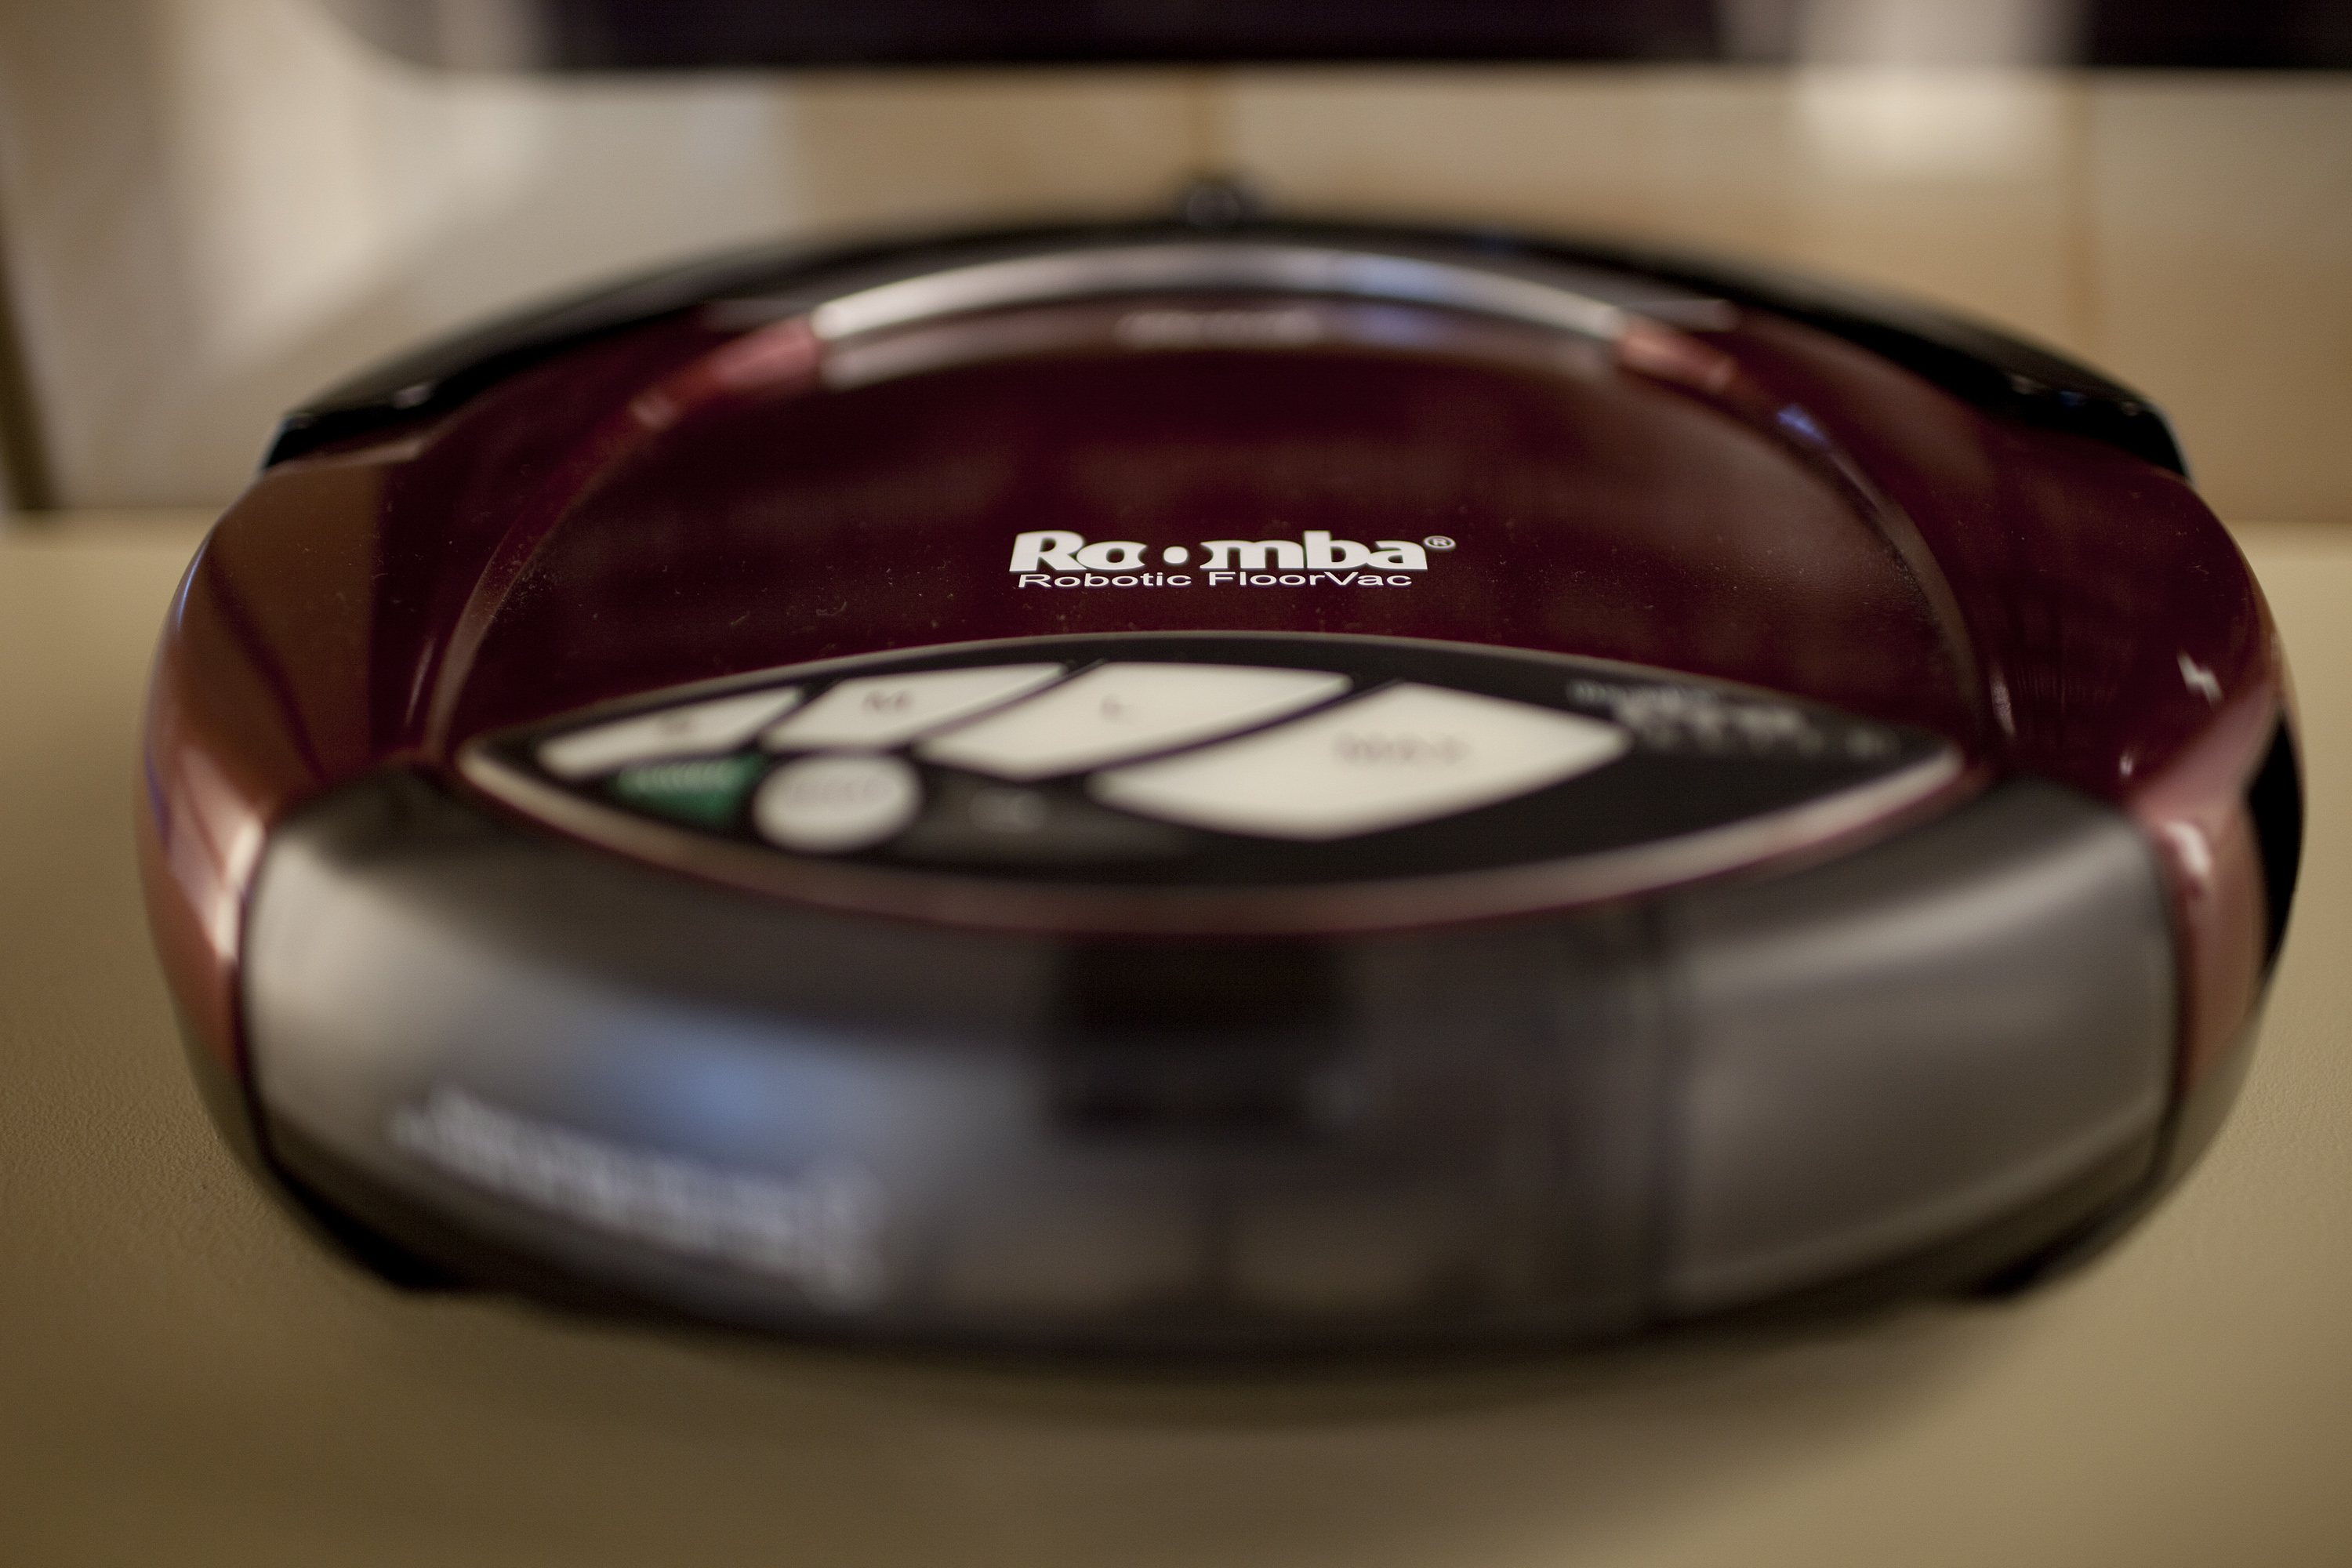 A vacuuming Roomba model robot is displayed at iRobot Corp. headquarters in Massachusetts.